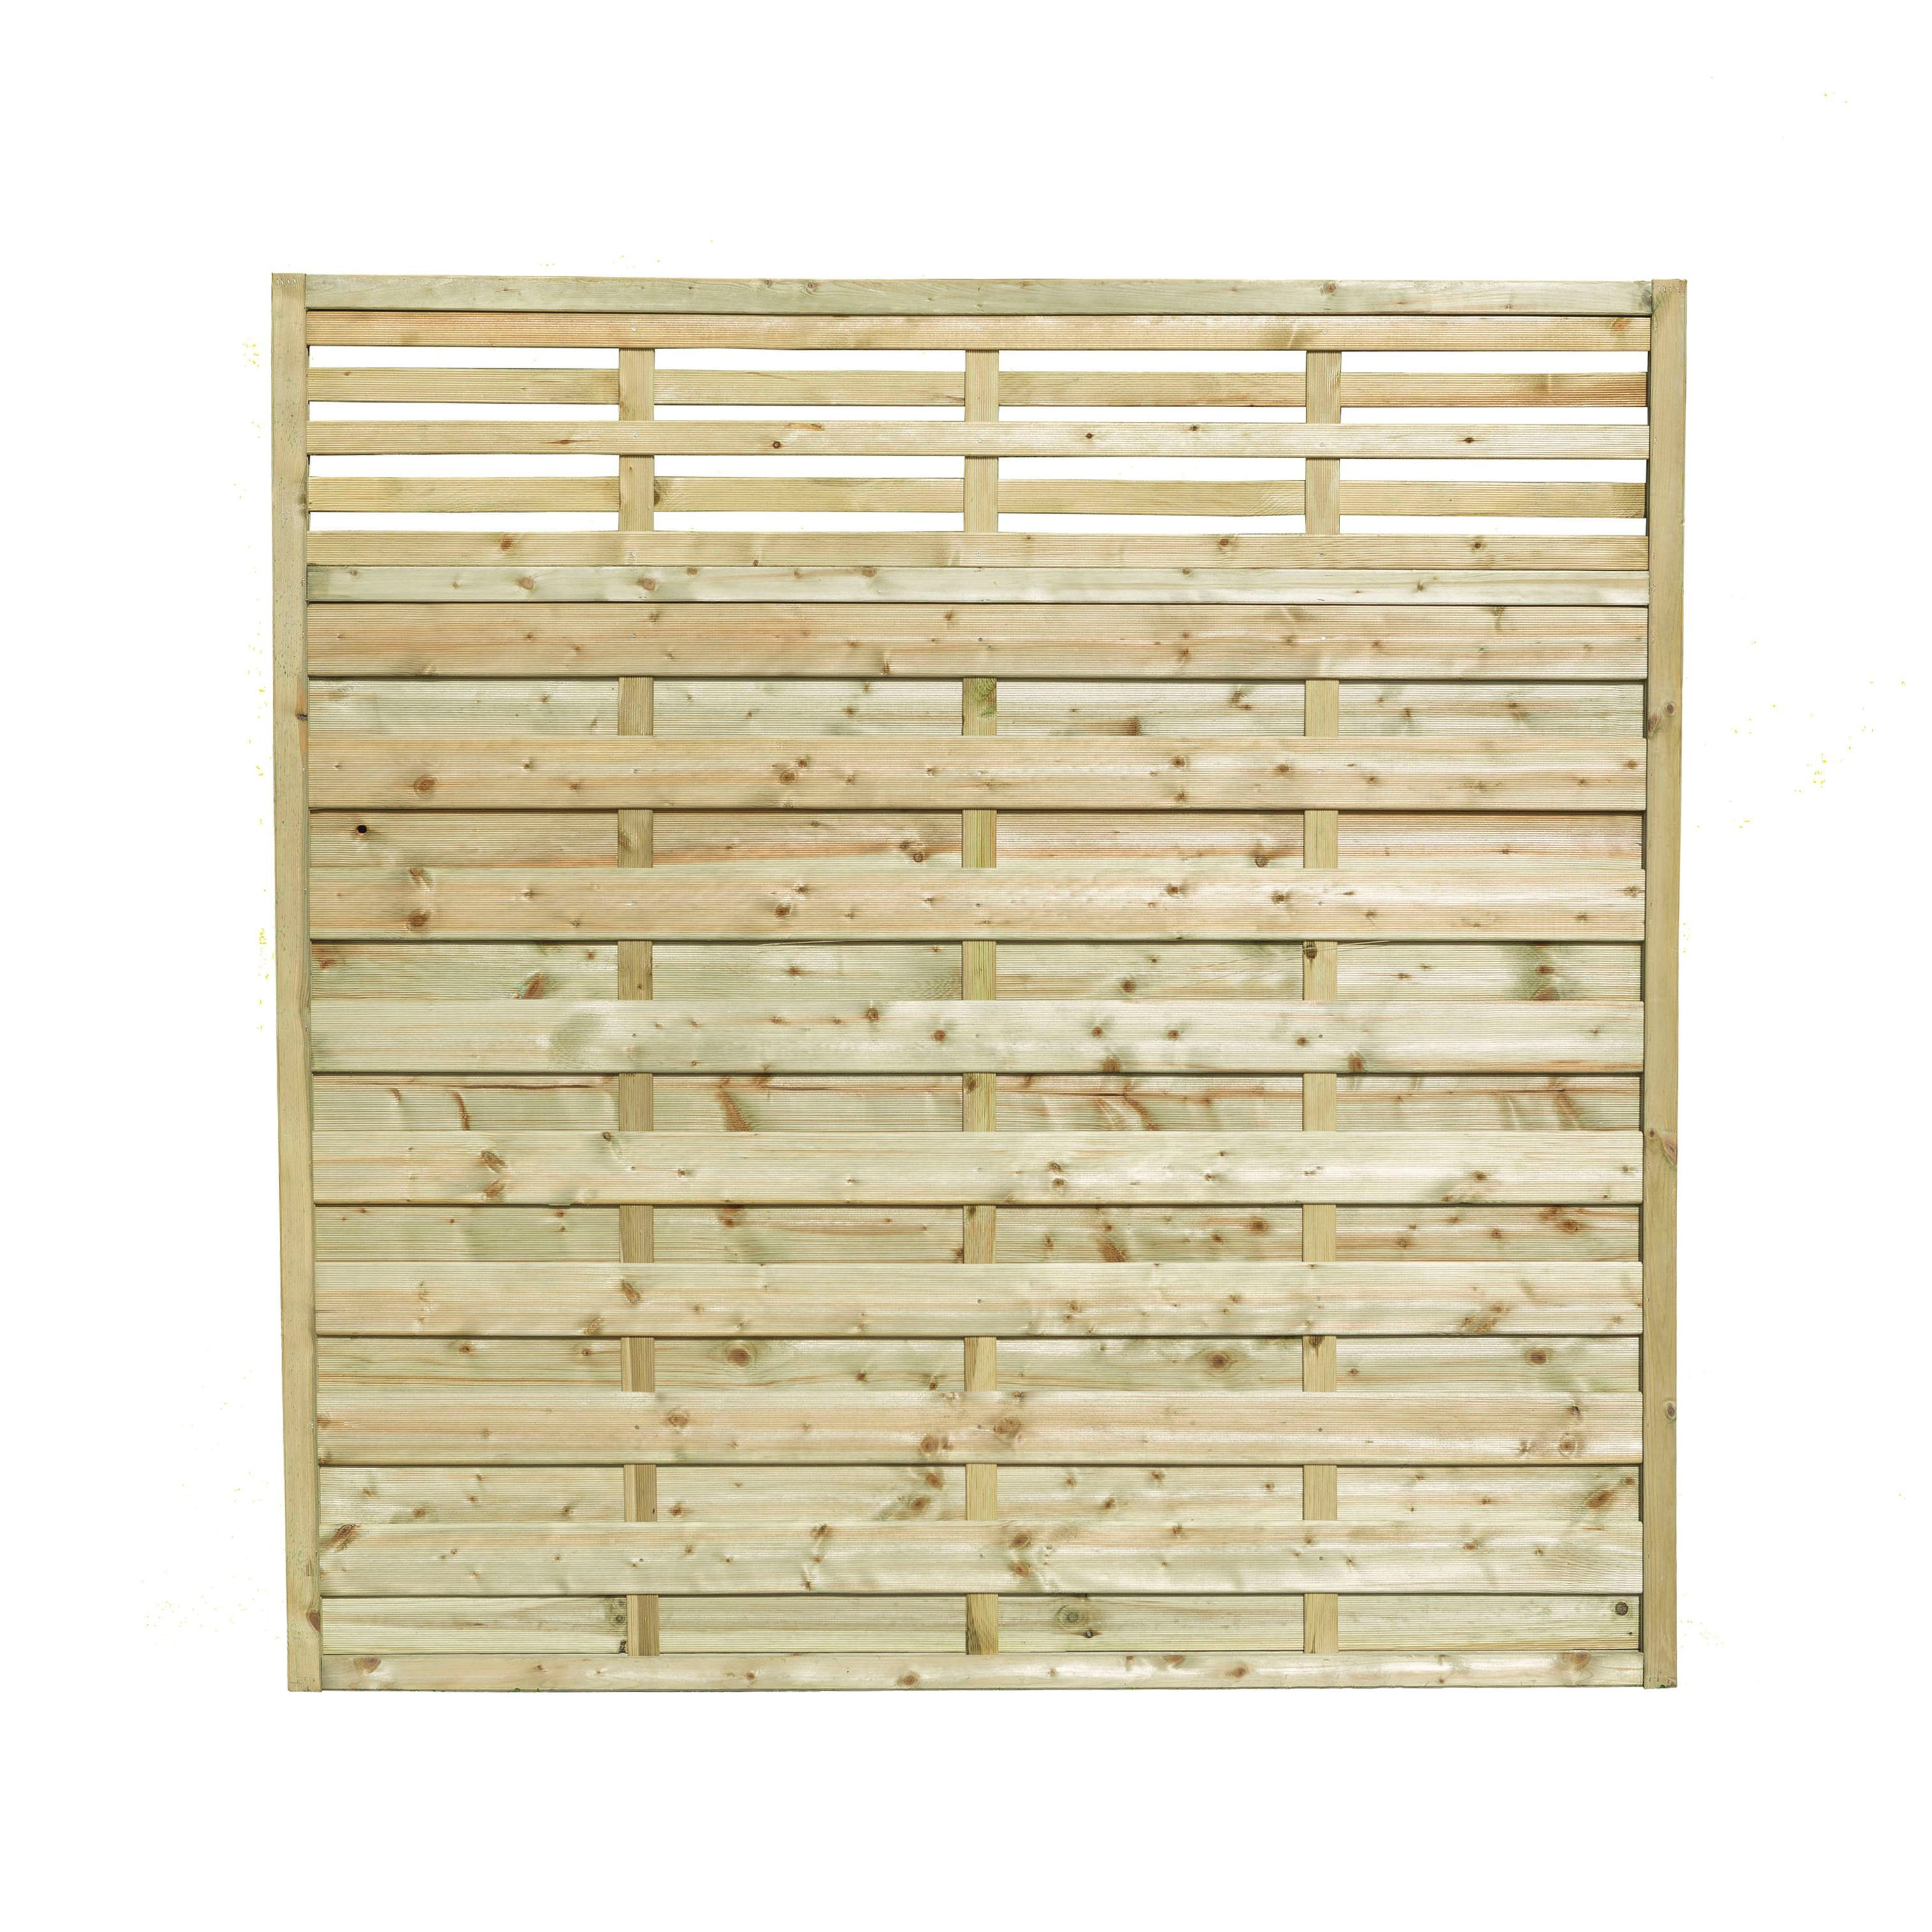 Wickes Kyoto Fence Panel 1 8m X 1 8m 5 Pack Wickes Co Uk Fence Panels Garden Fence Panels Contemporary Fence Panels